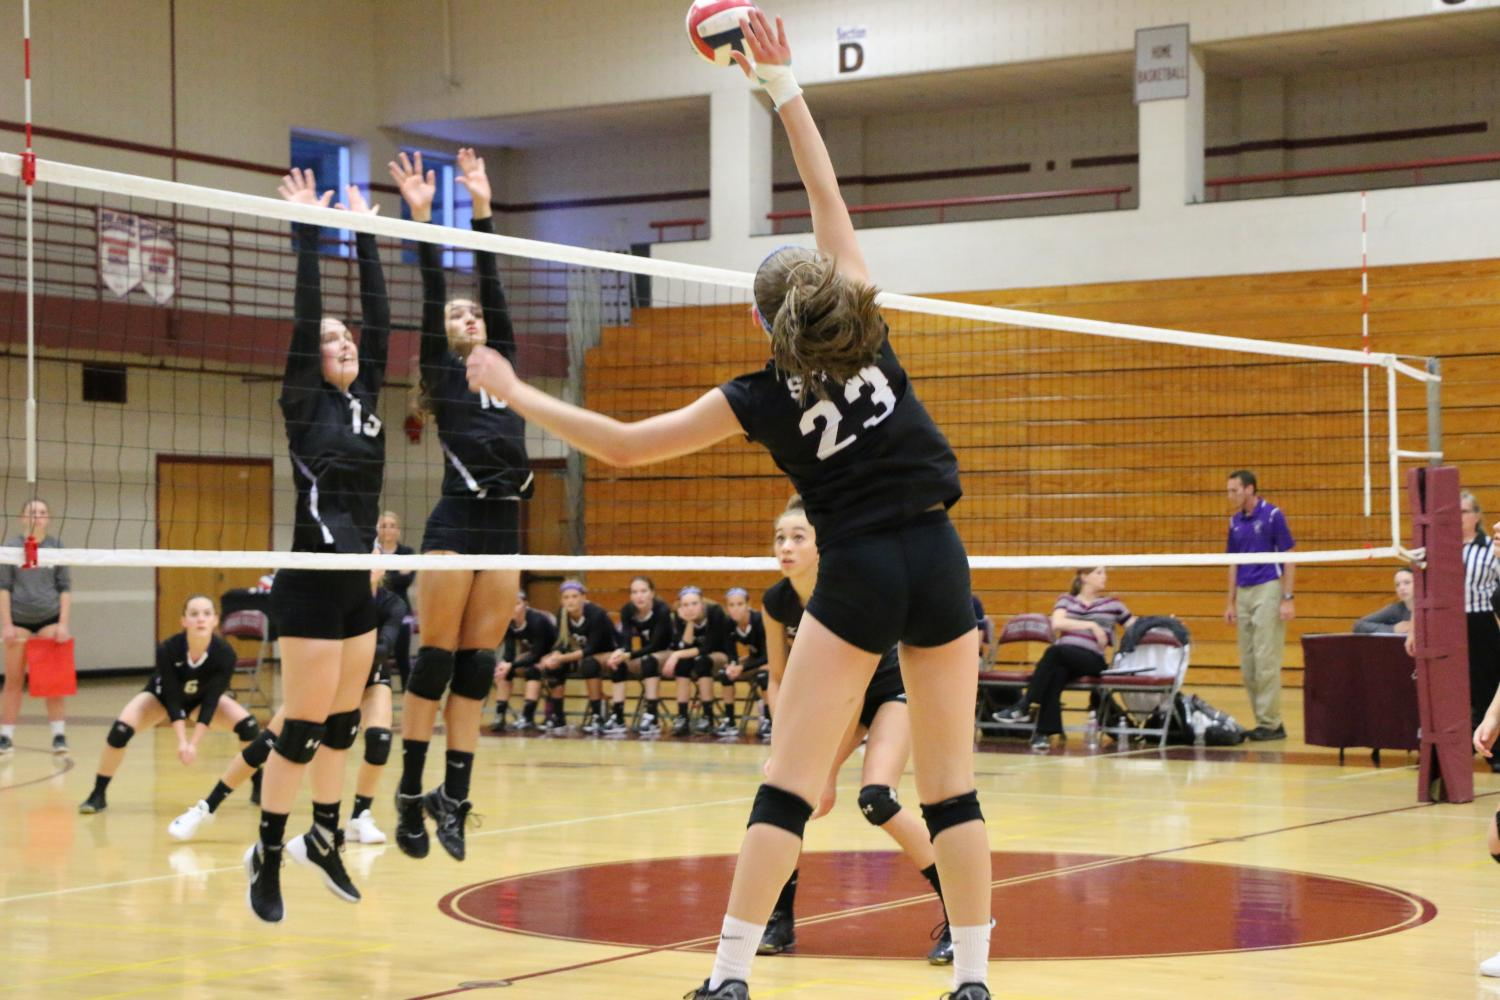 Kate Lachendro, a sophomore, hits the ball towards Mifflin County.